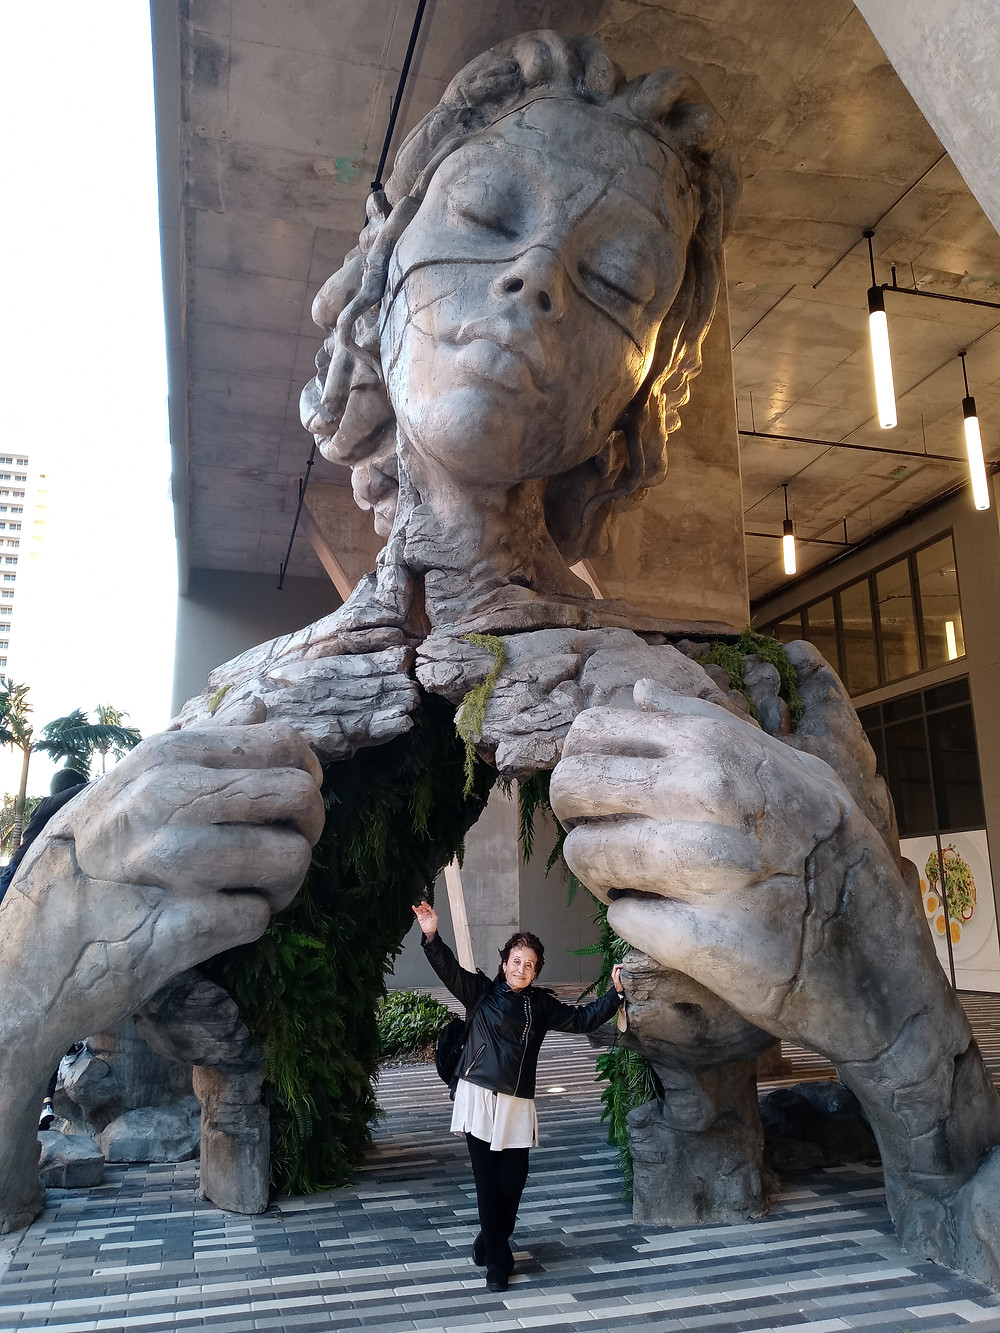 Nomi Bachar leaning against a stone statue of a woman